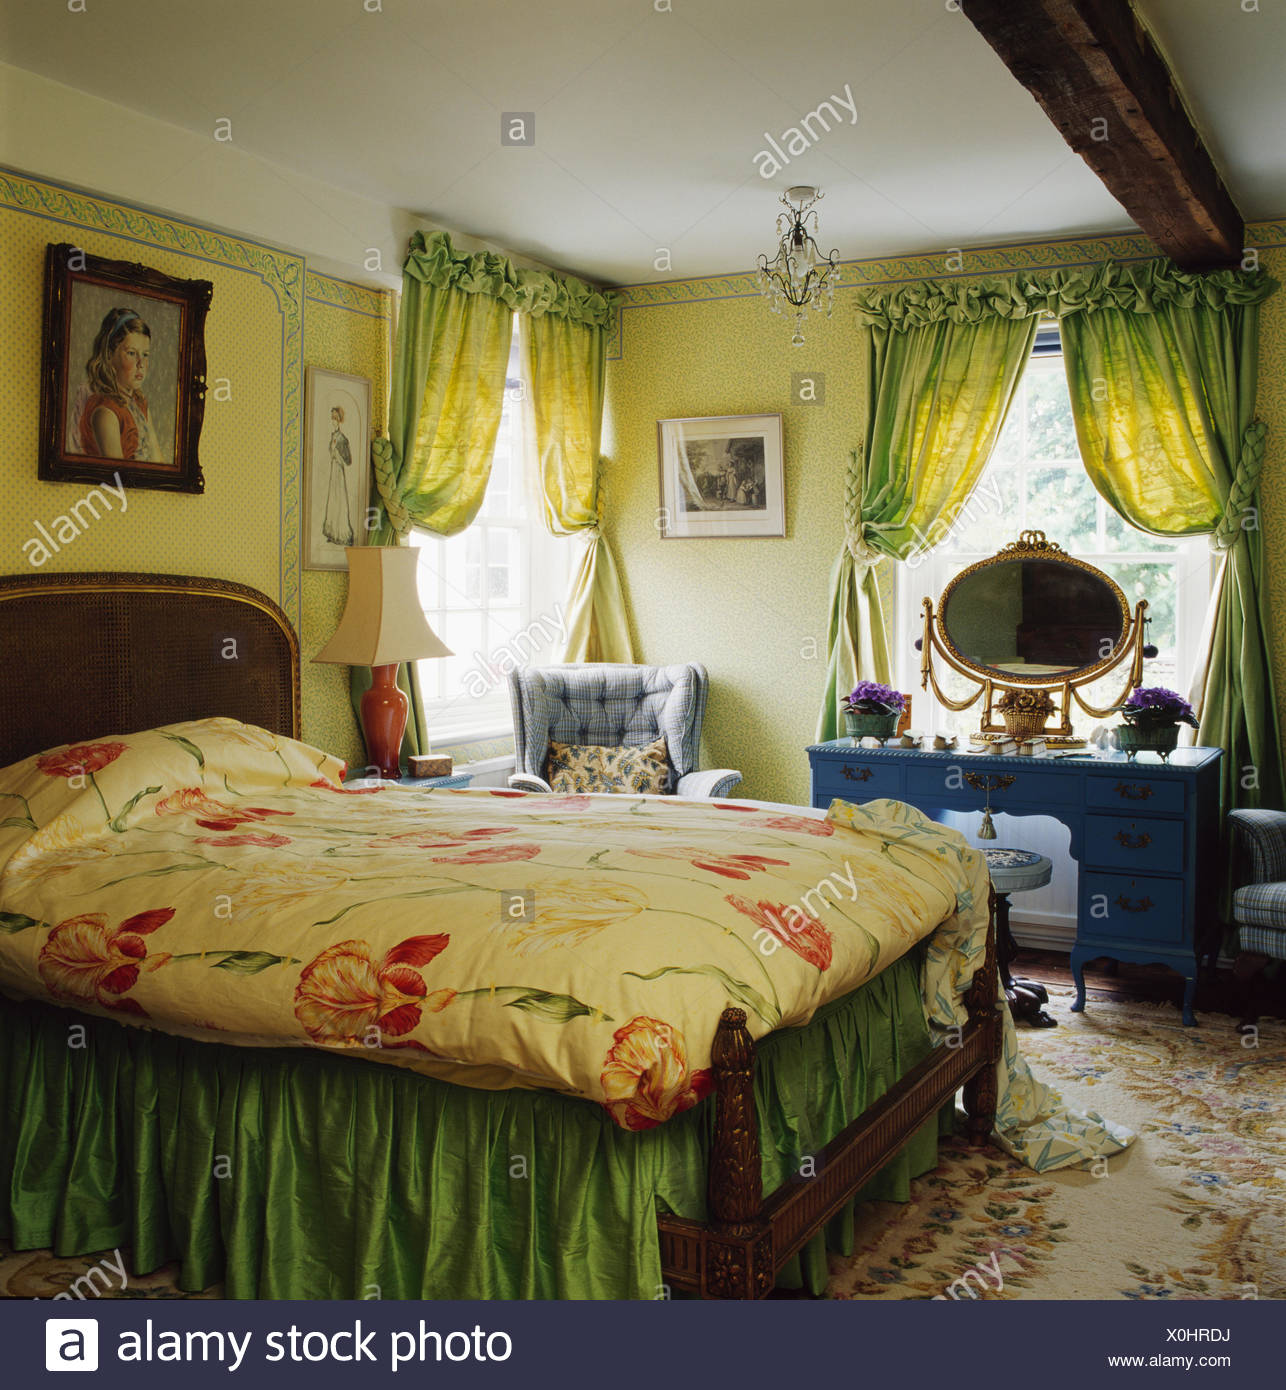 Pale Green Curtains On Window In Pale Yellow Bedroom With Floral Patterned  Quilt And Green Valence On Bed